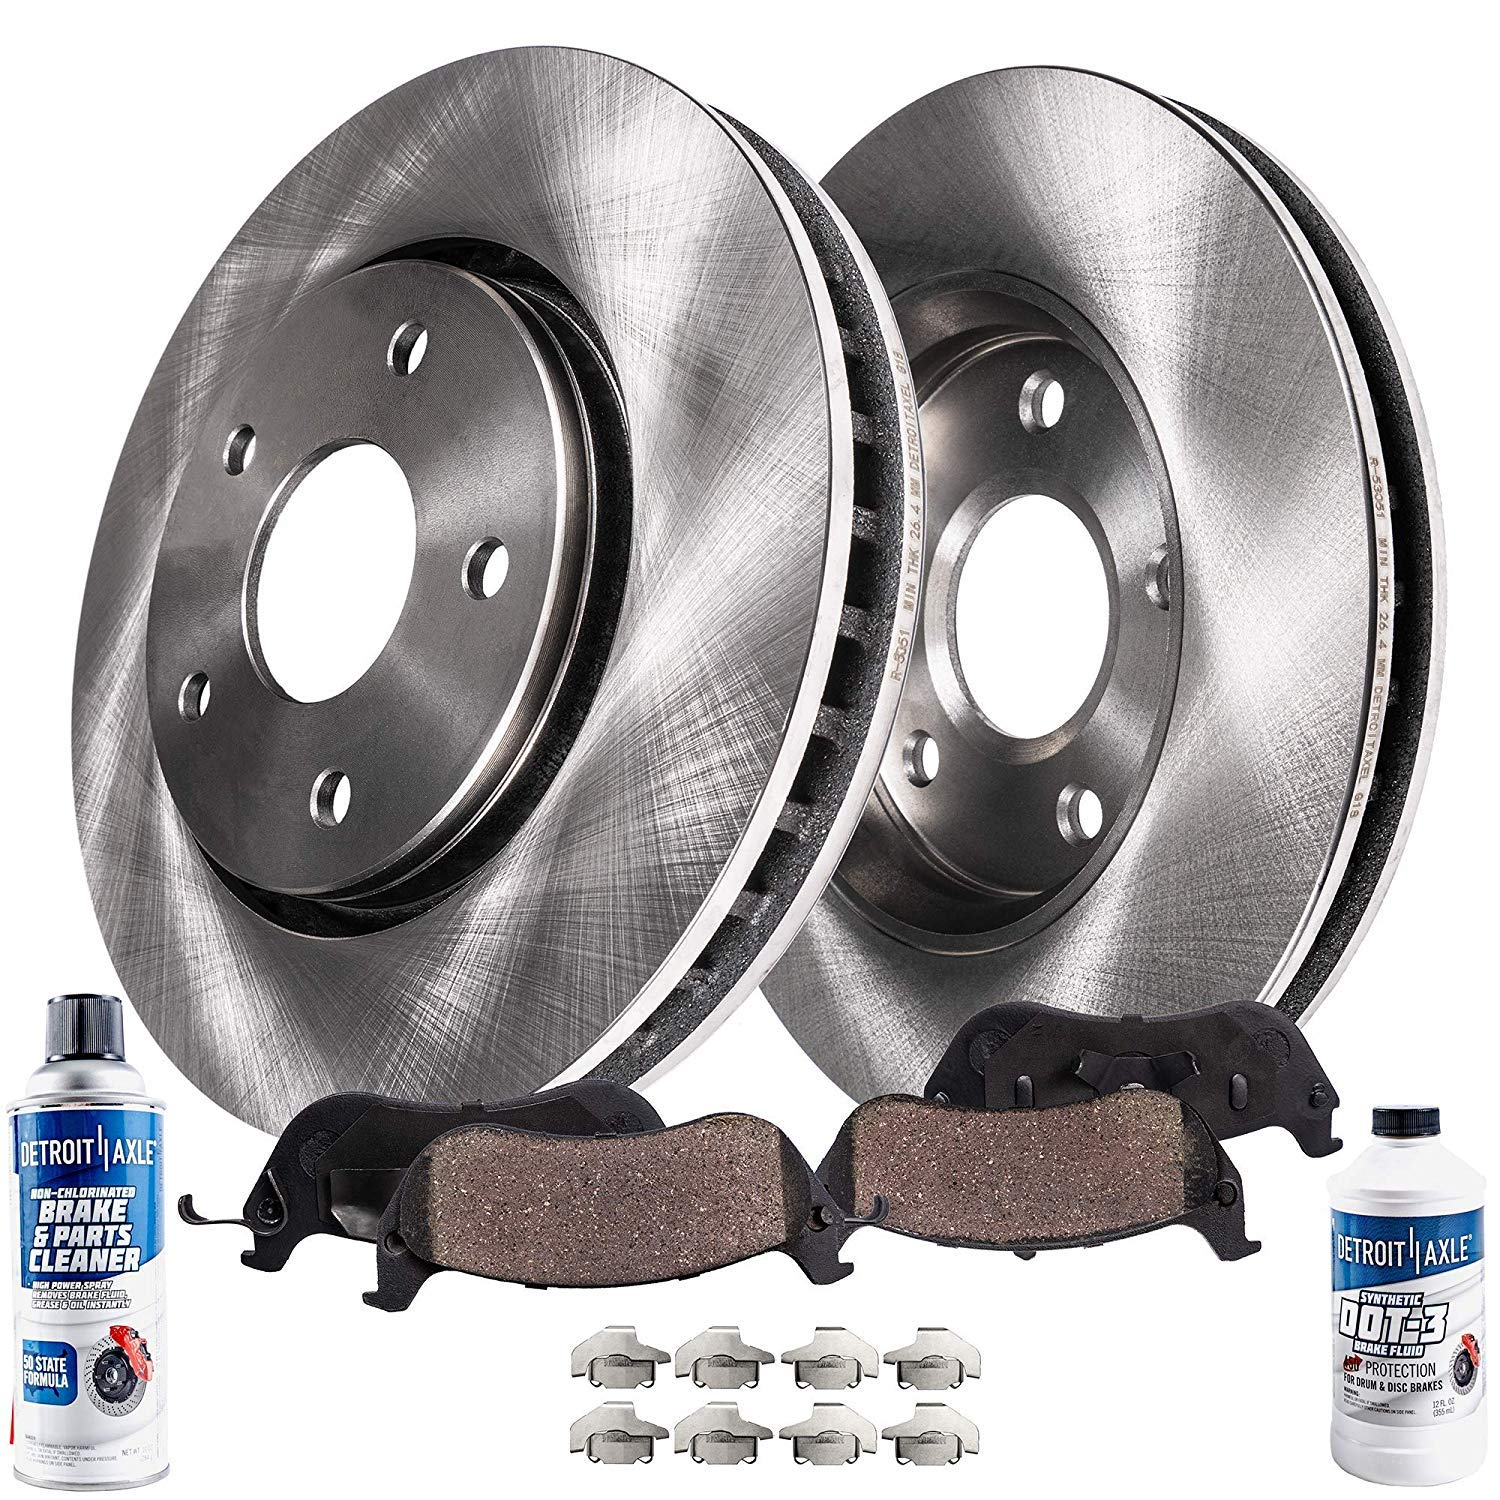 1998 1999 For Lincoln Continental Front Disc Brake Rotors and Ceramic Pads